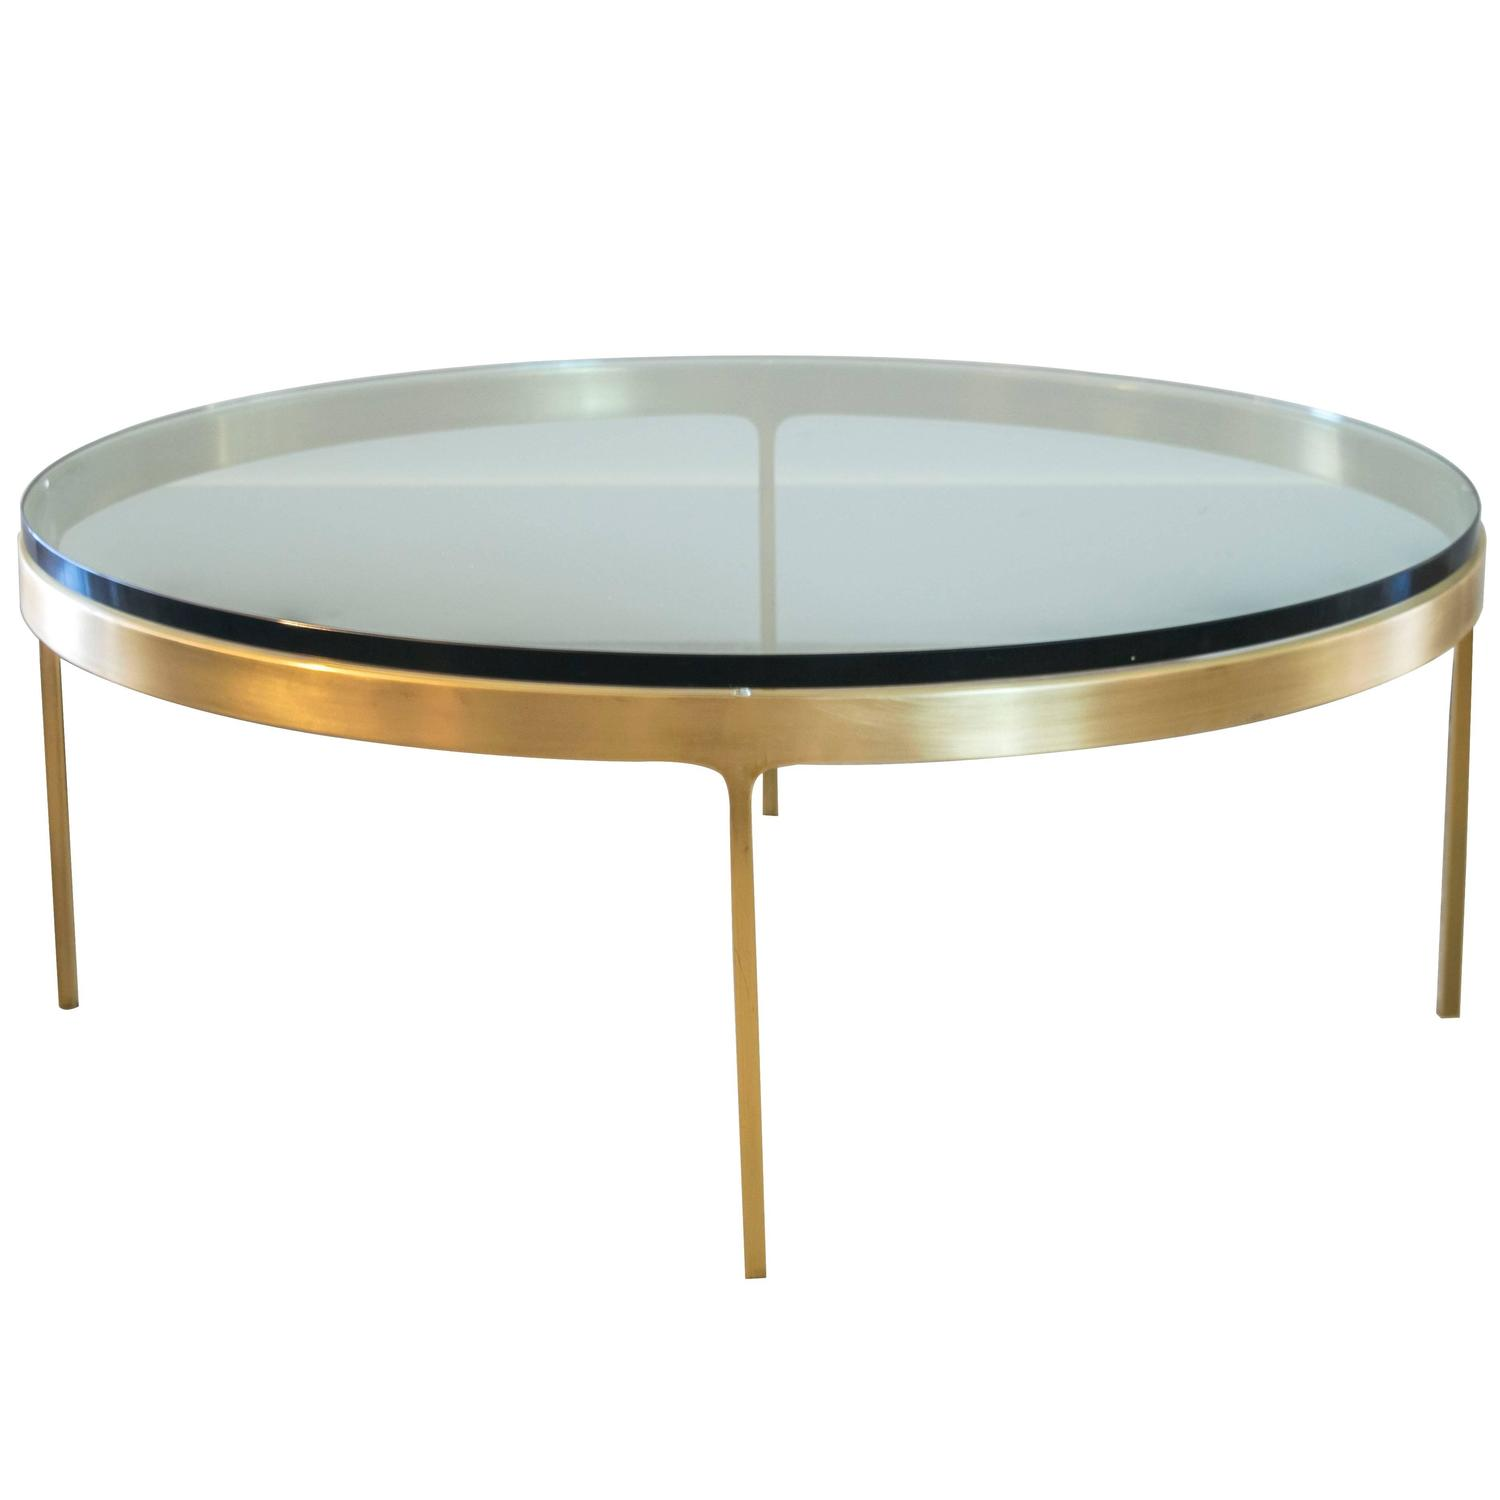 Solid brass round coffee table by nicos zographos at 1stdibs One of a kind coffee tables